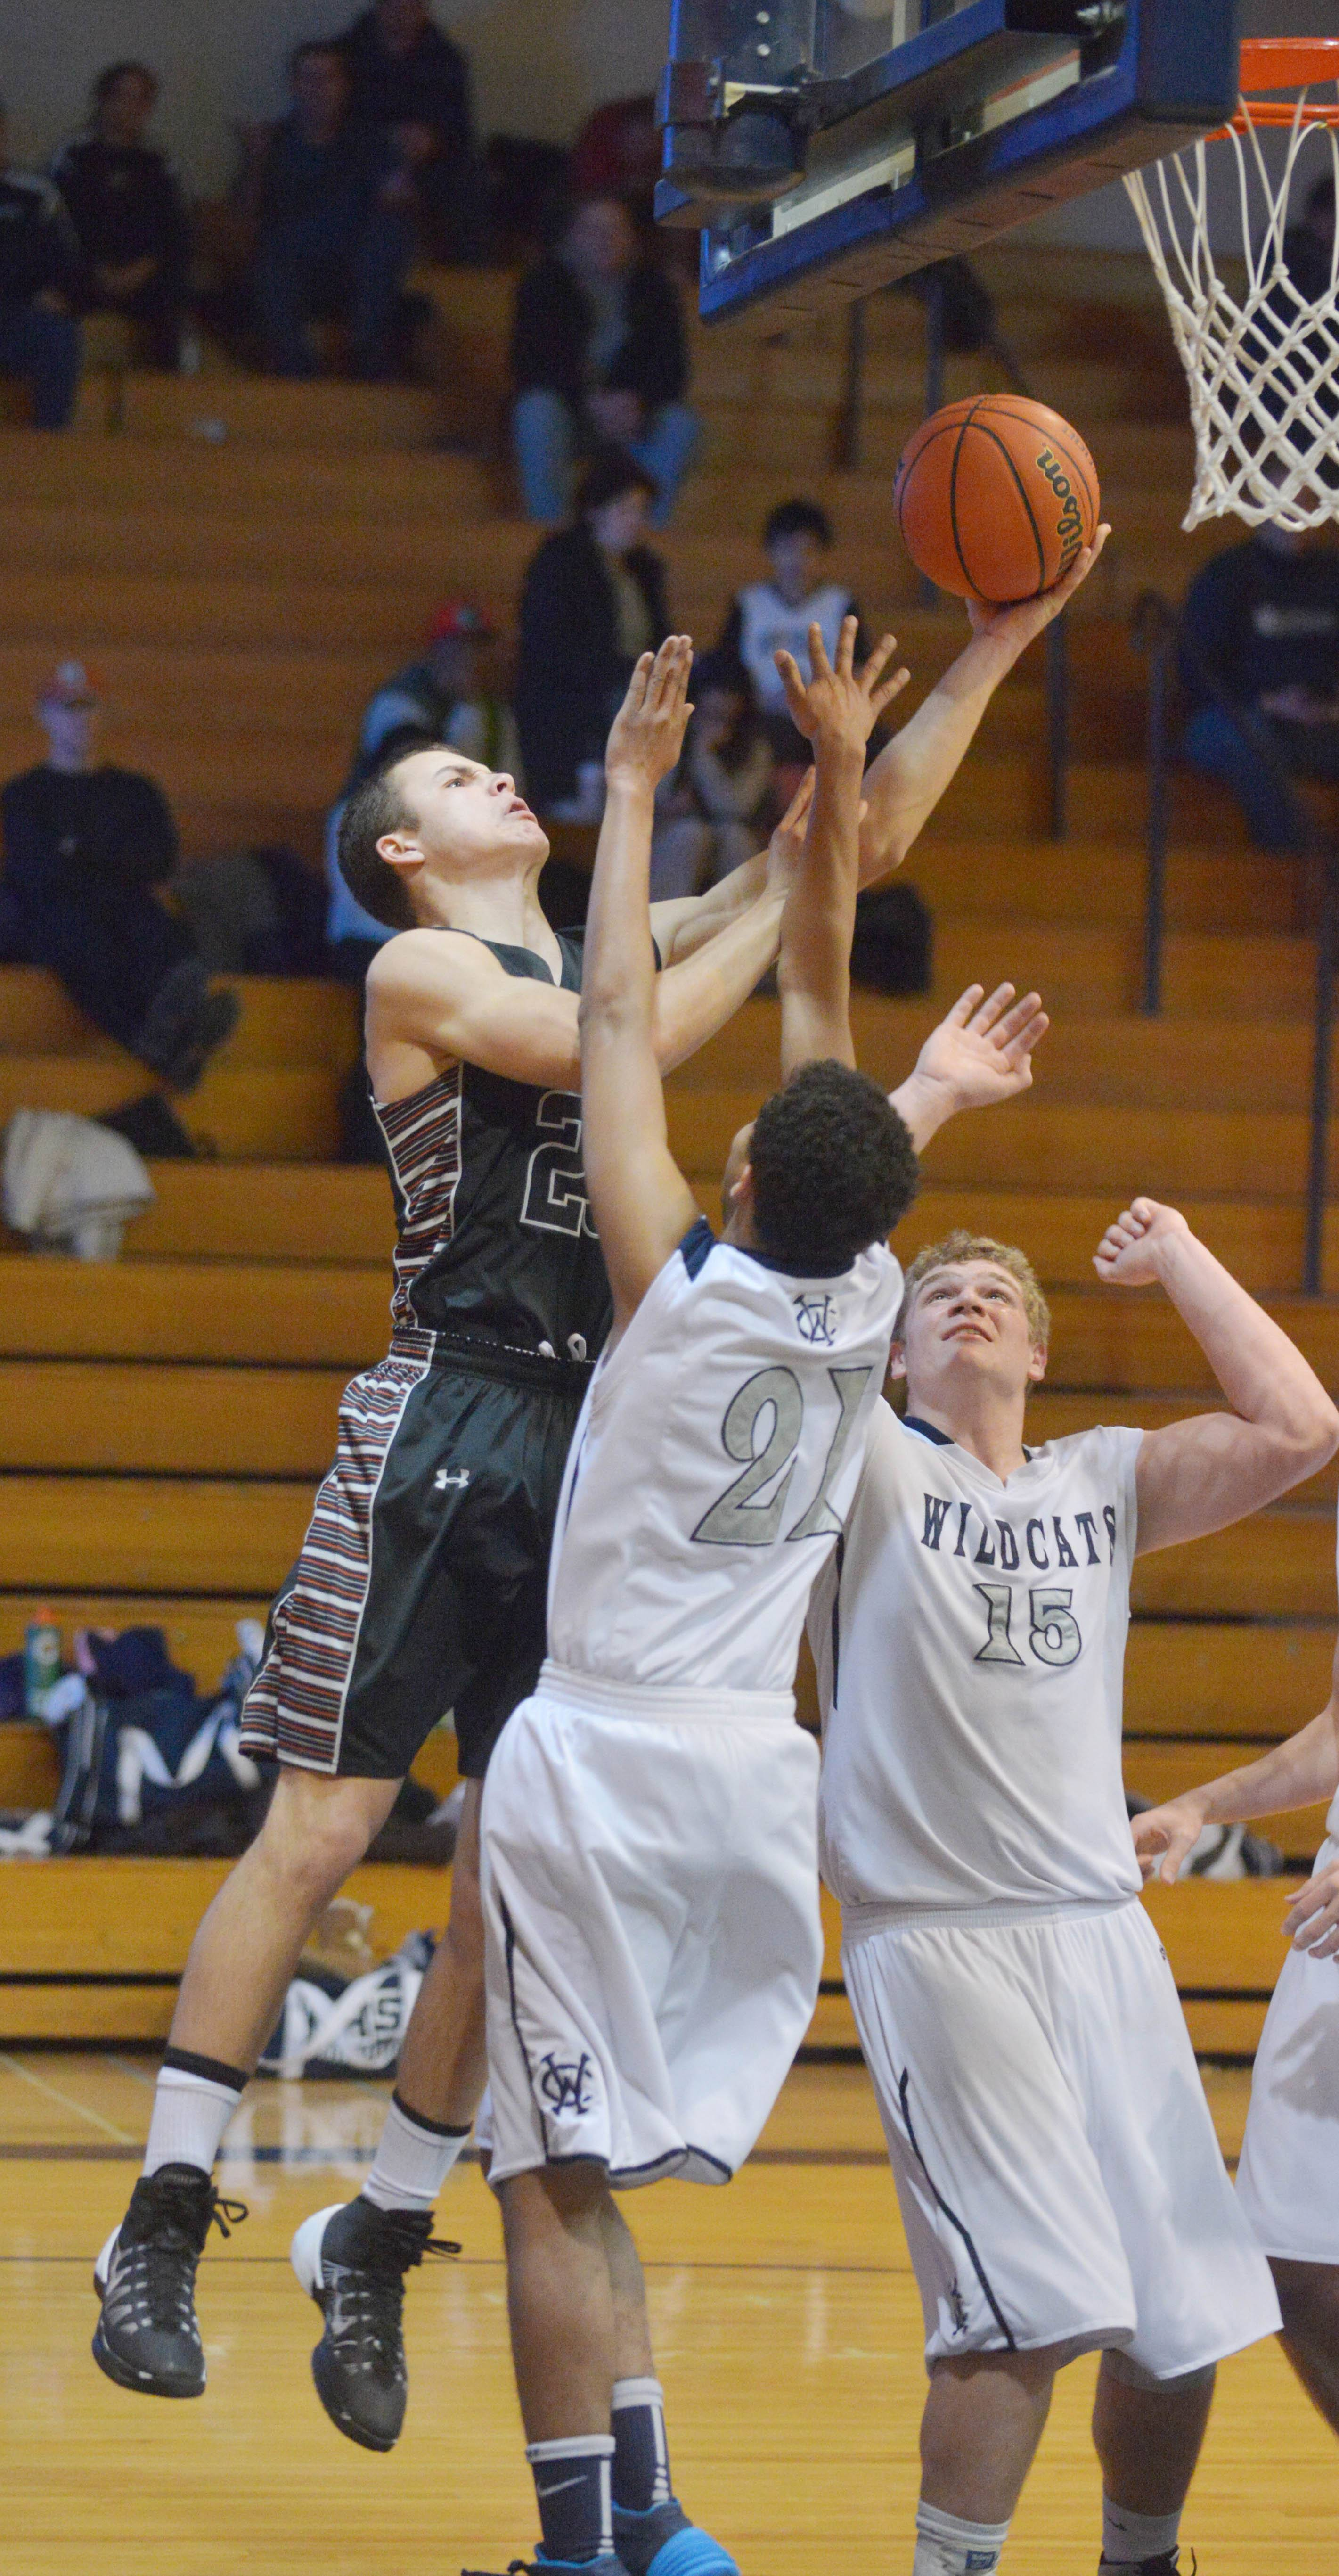 Kaneland's Tyler Carlson takes a shot over Michael Bibbs and Ethan Doell of West Chicago.